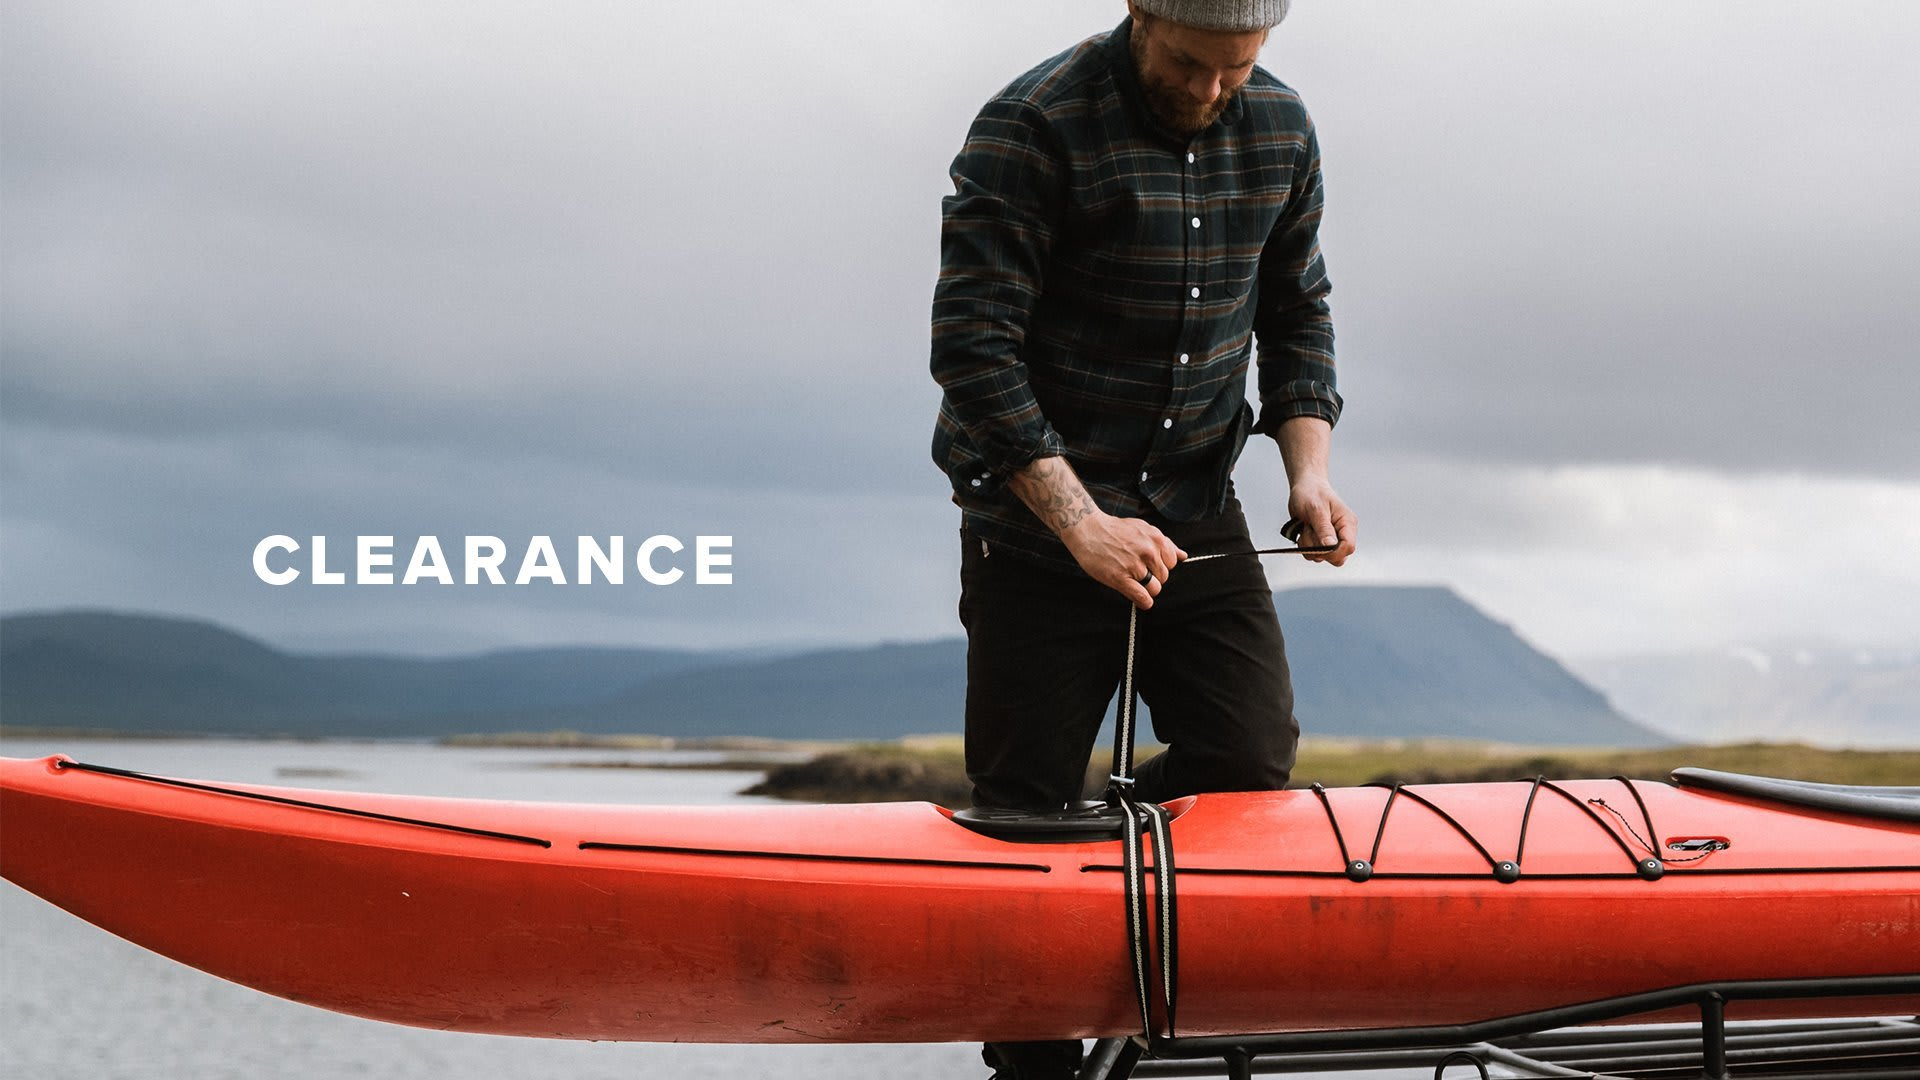 Clearance, man tying down his kayak to a trailer